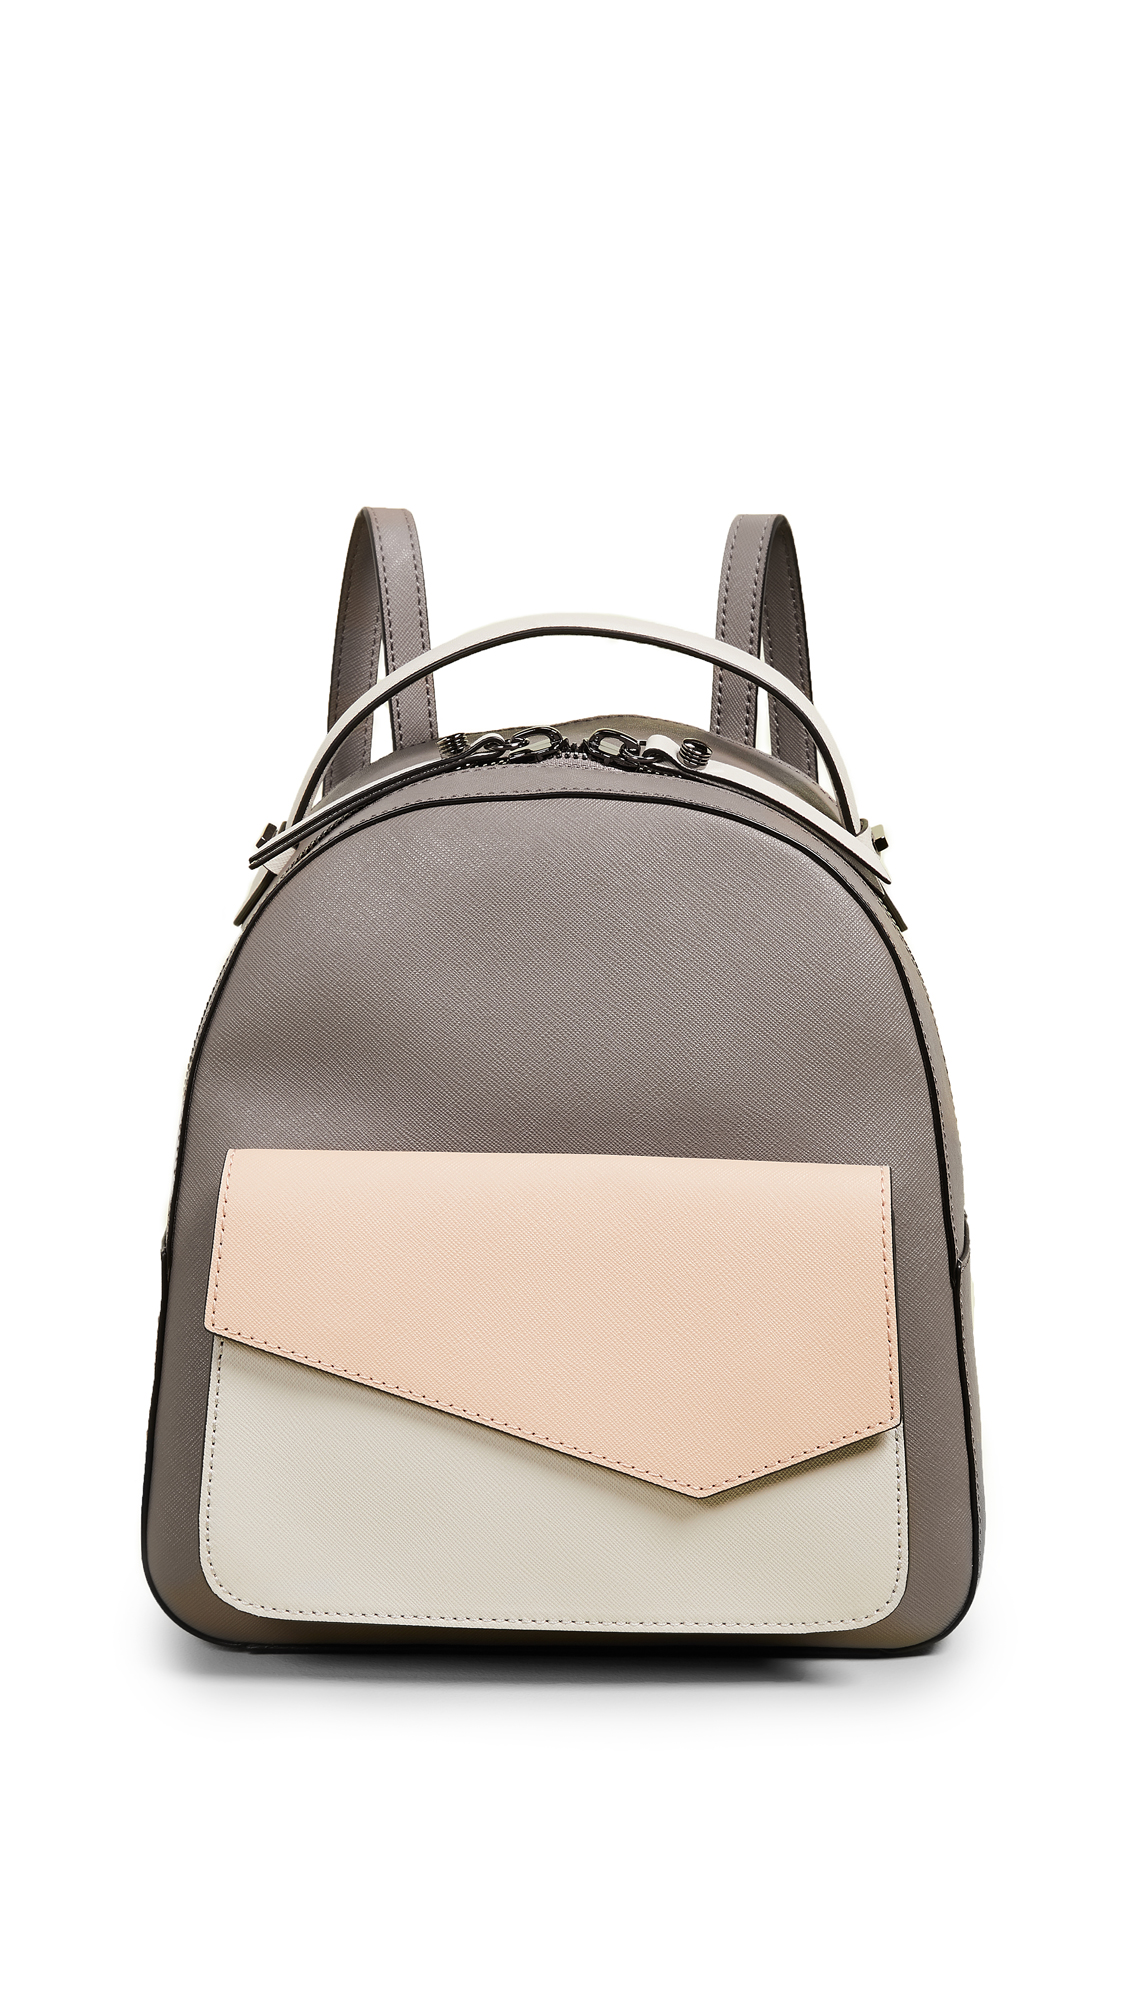 Cobble Hill Calfskin Leather Backpack - Coral, Nude Combo